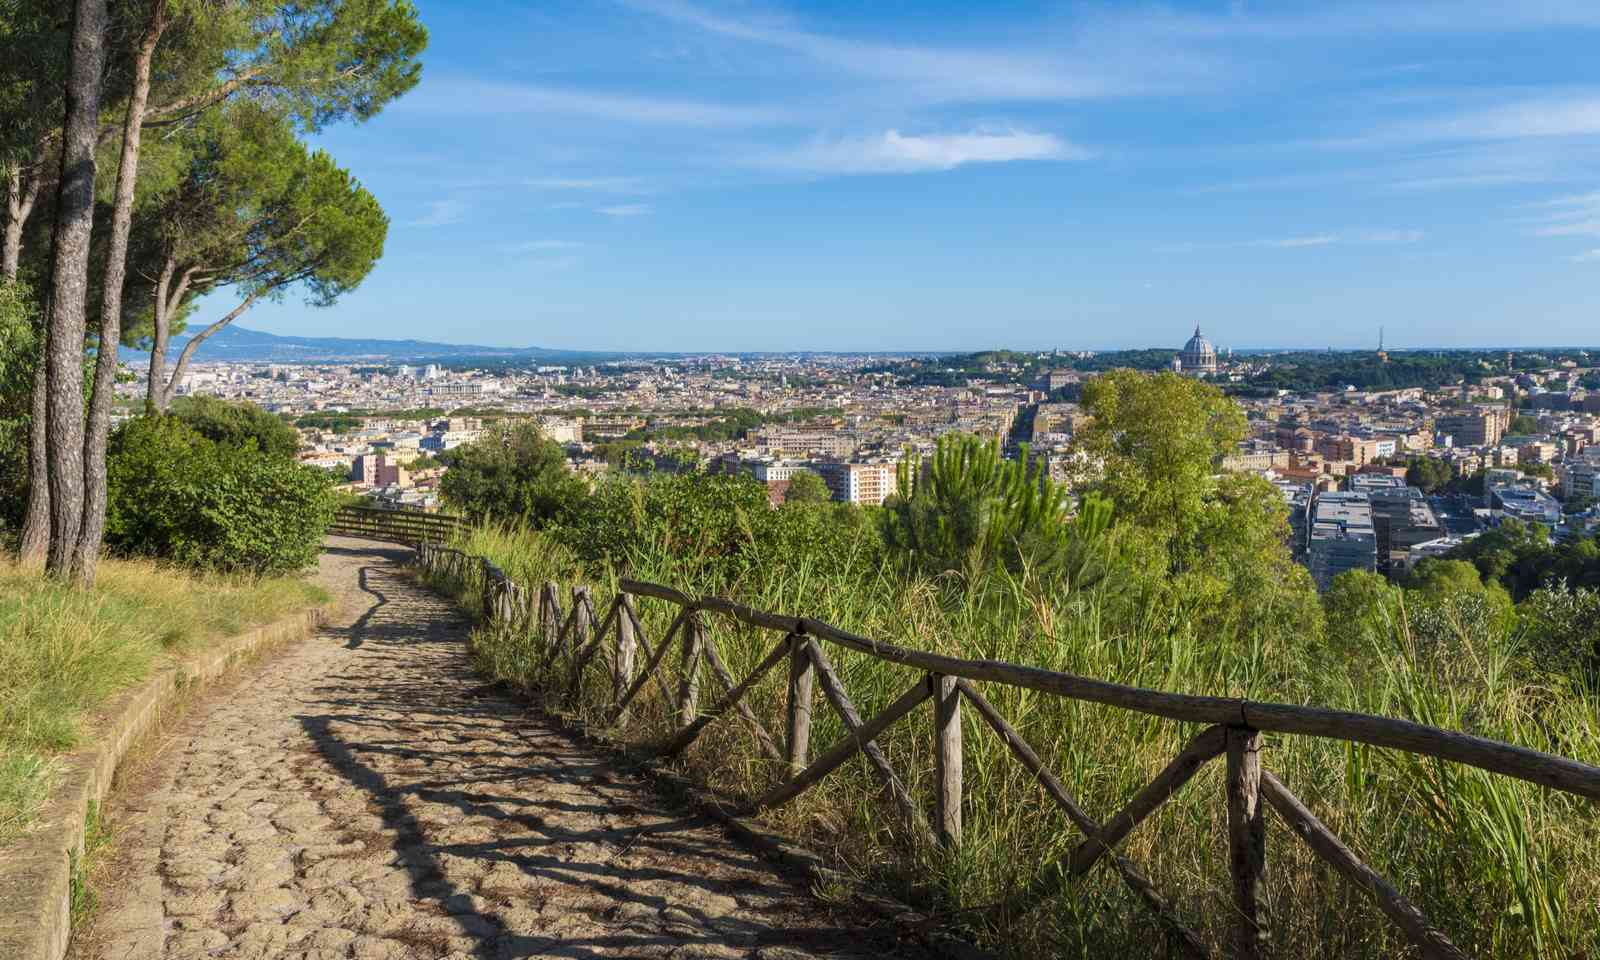 View of Rome from the hills (Dreamstime)